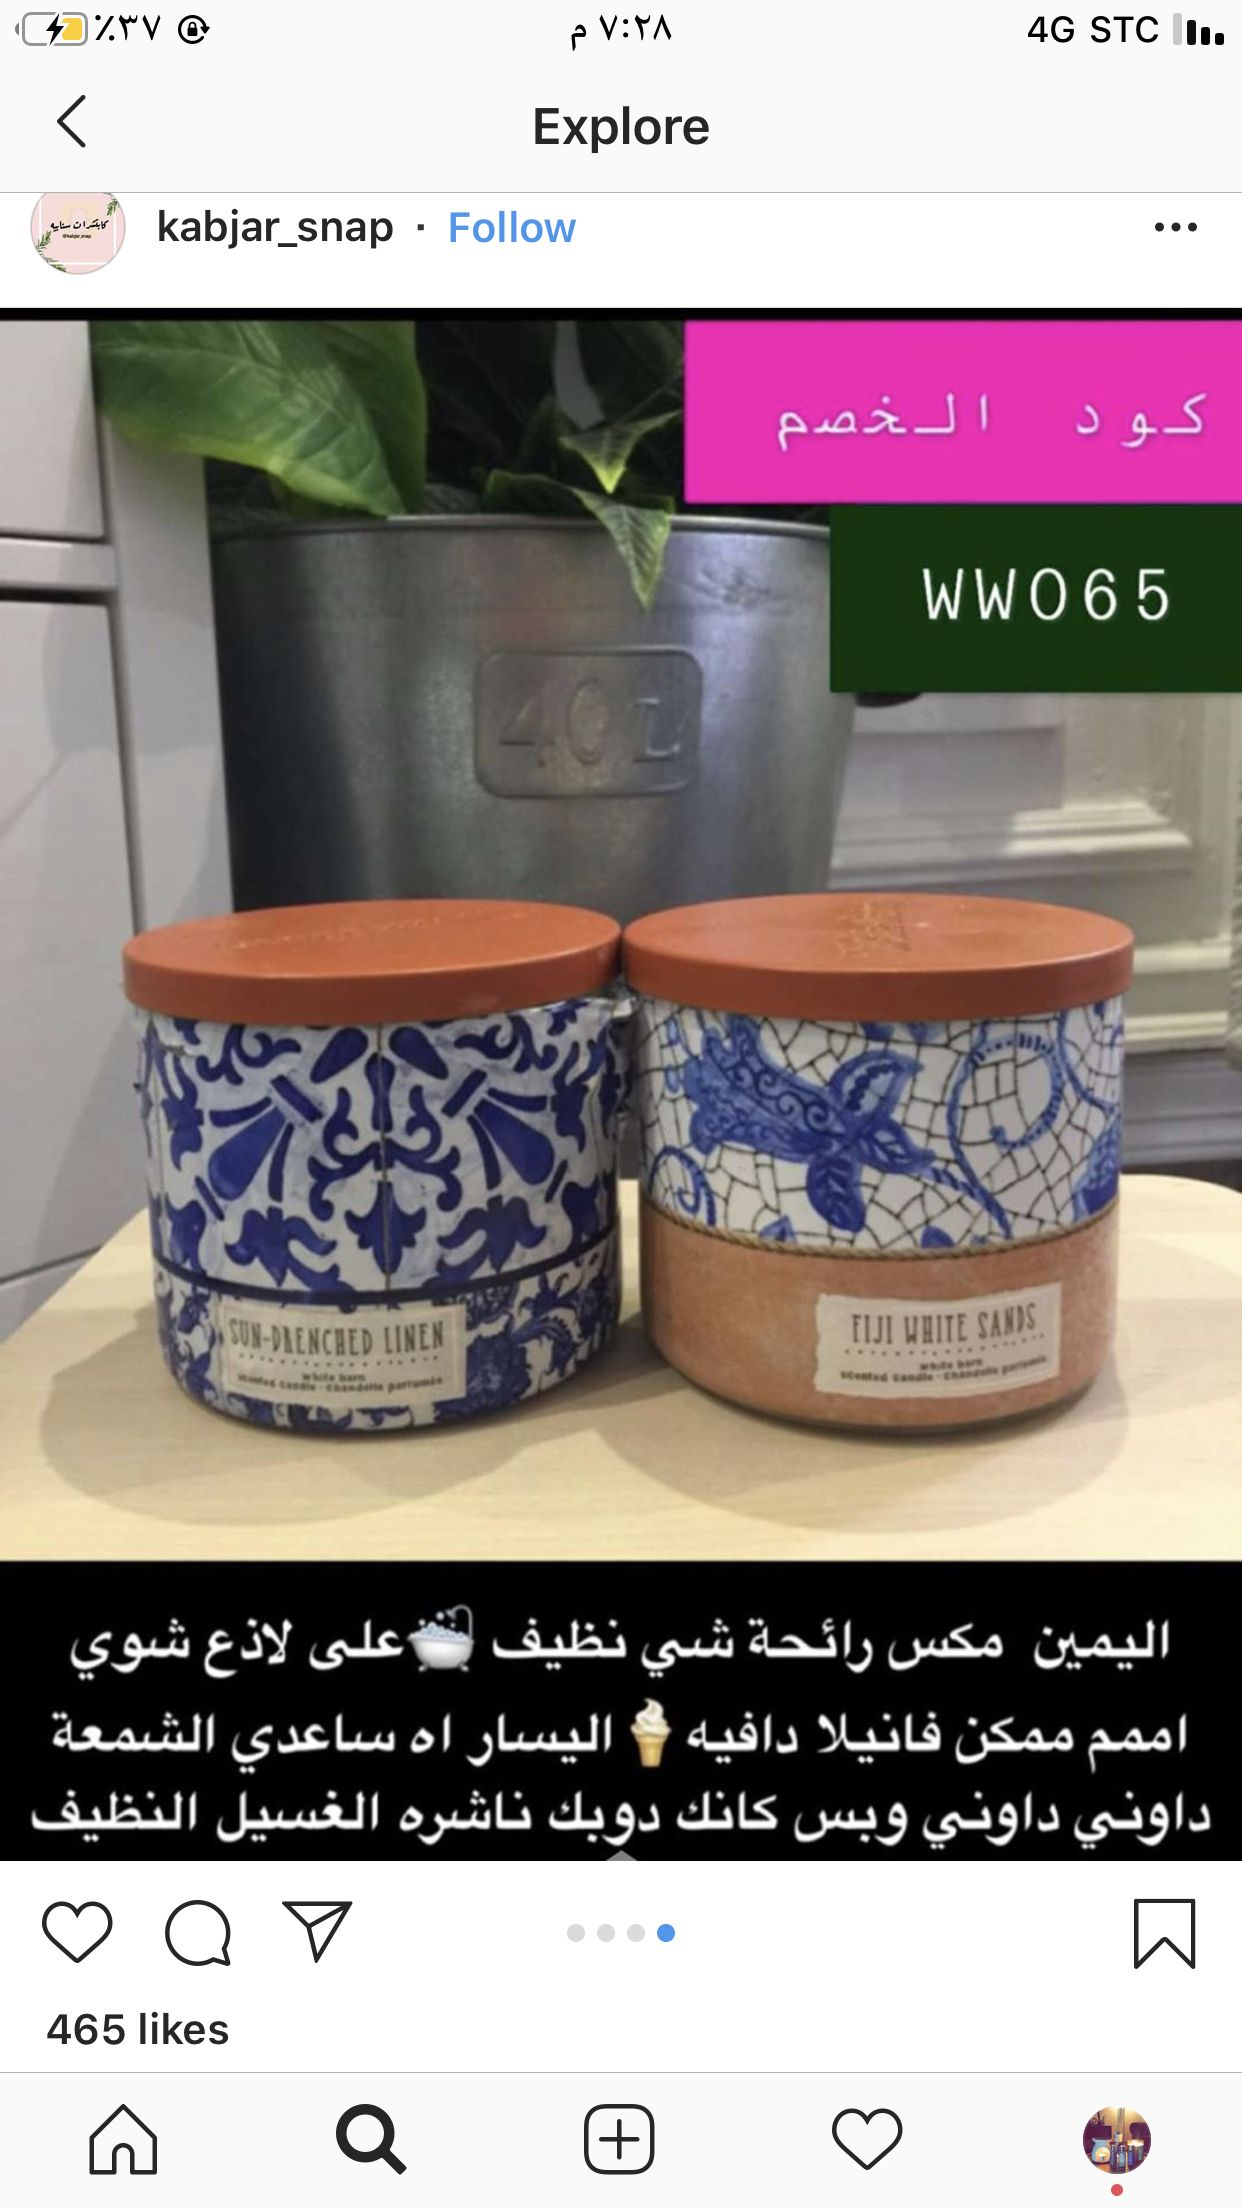 Pin By Alanoud On Candles Beauty Skin Care Routine Bath And Body Work Body Skin Care